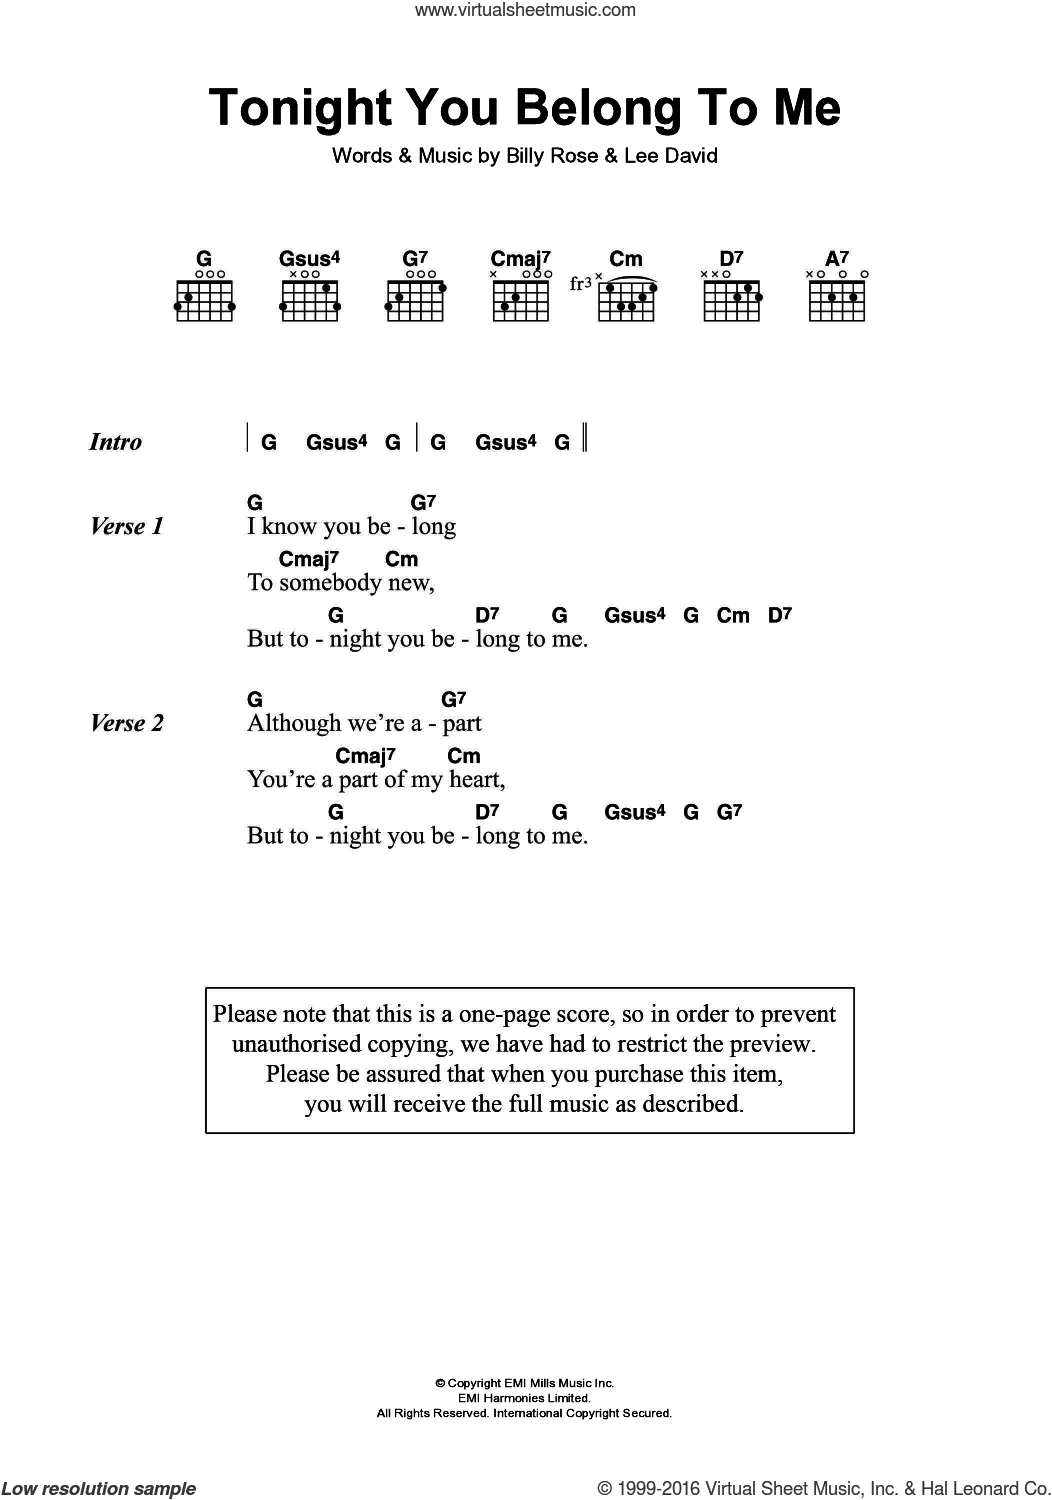 Tonight You Belong To Me sheet music for guitar (chords) by Eddie Vedder, Billy Rose and Lee David, intermediate